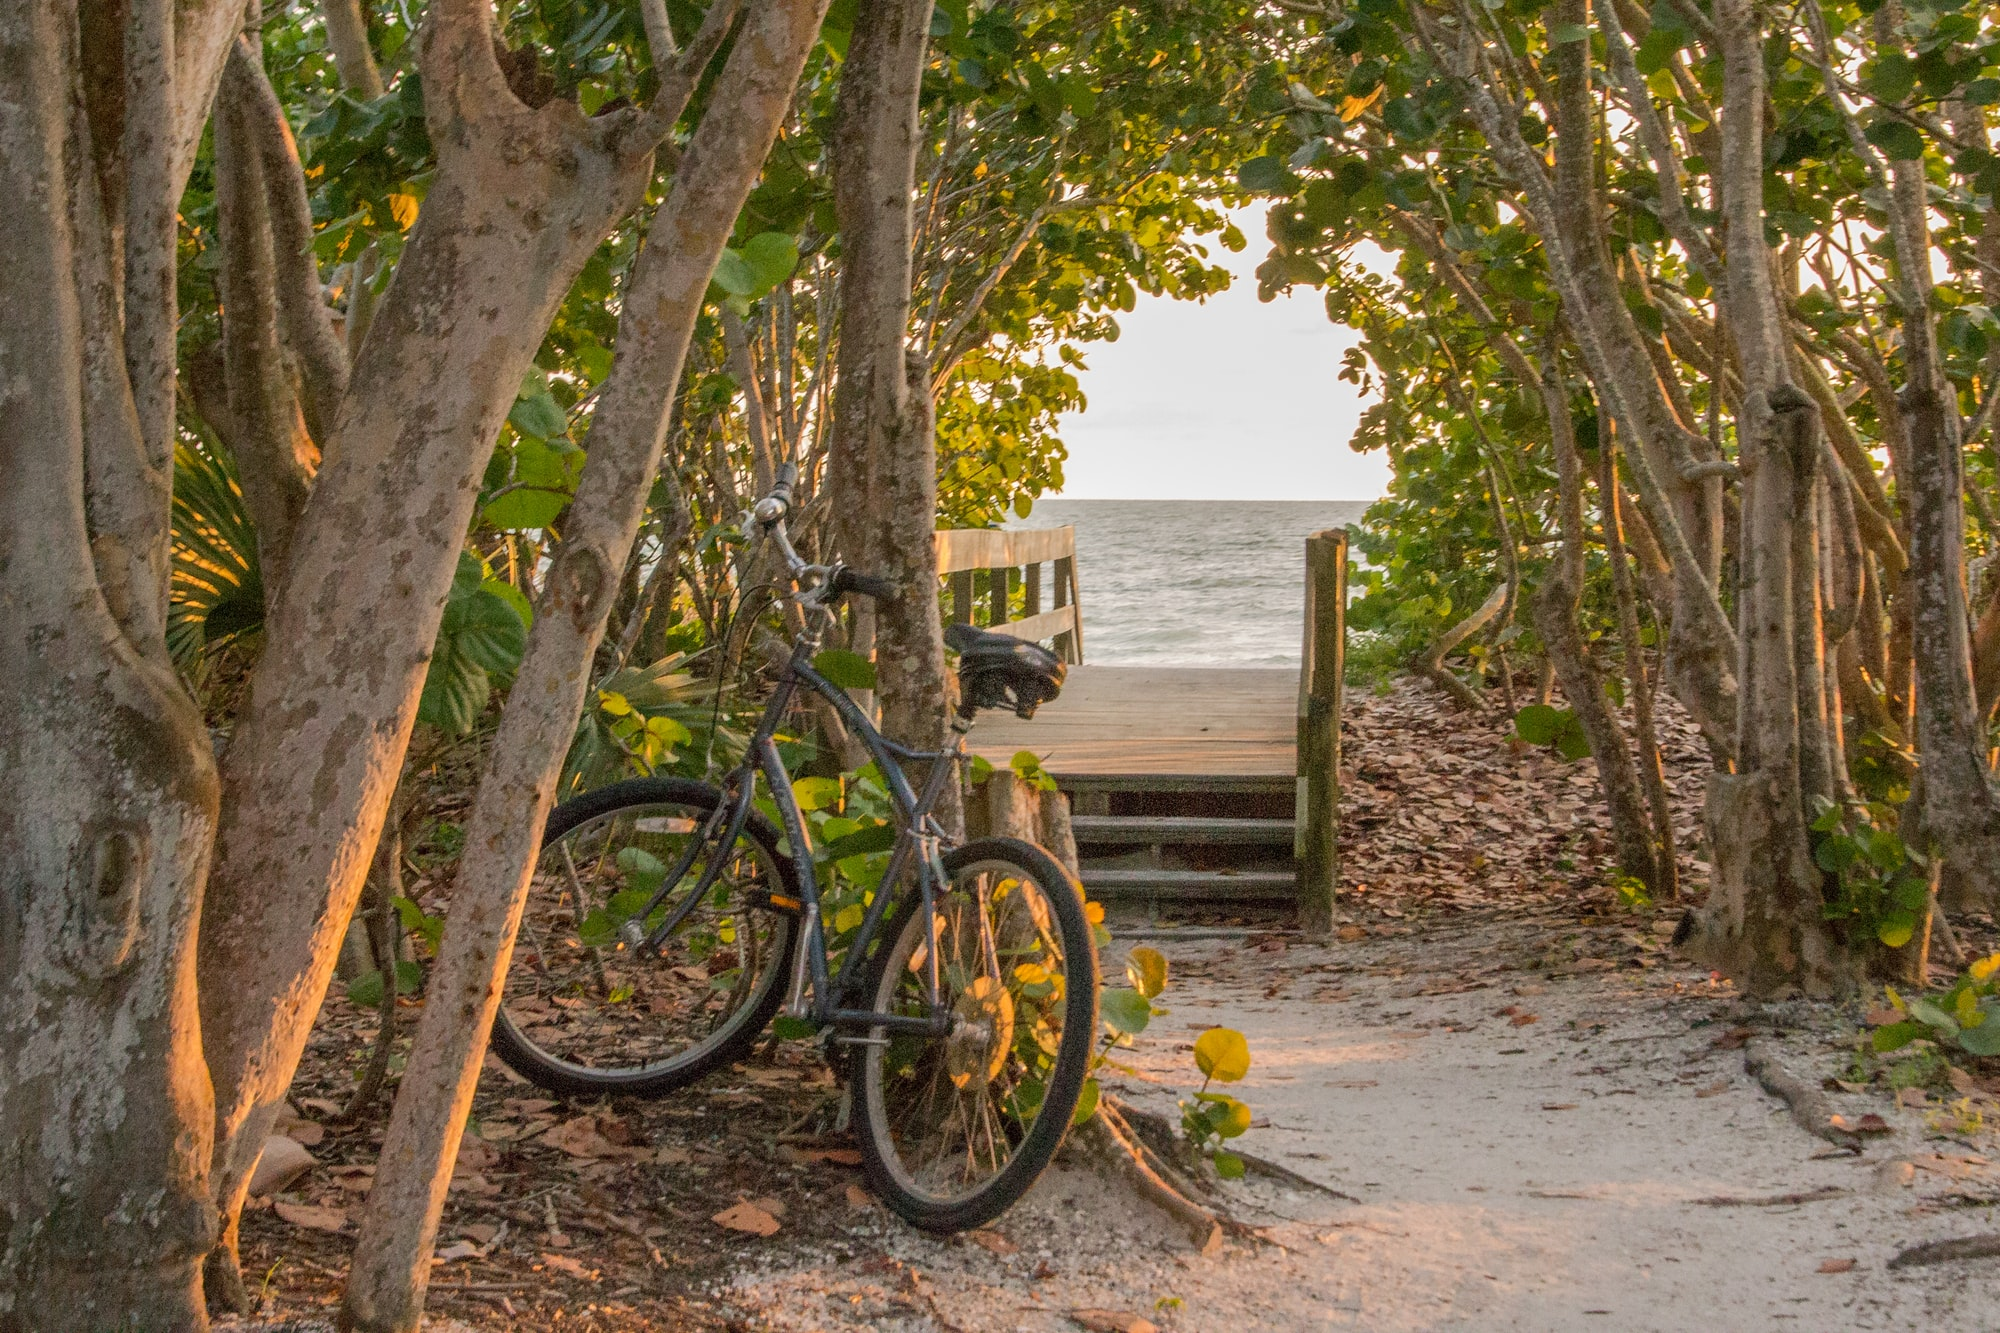 A beach bicycle rests against a tree on a beach in Sanibel Island, Florida